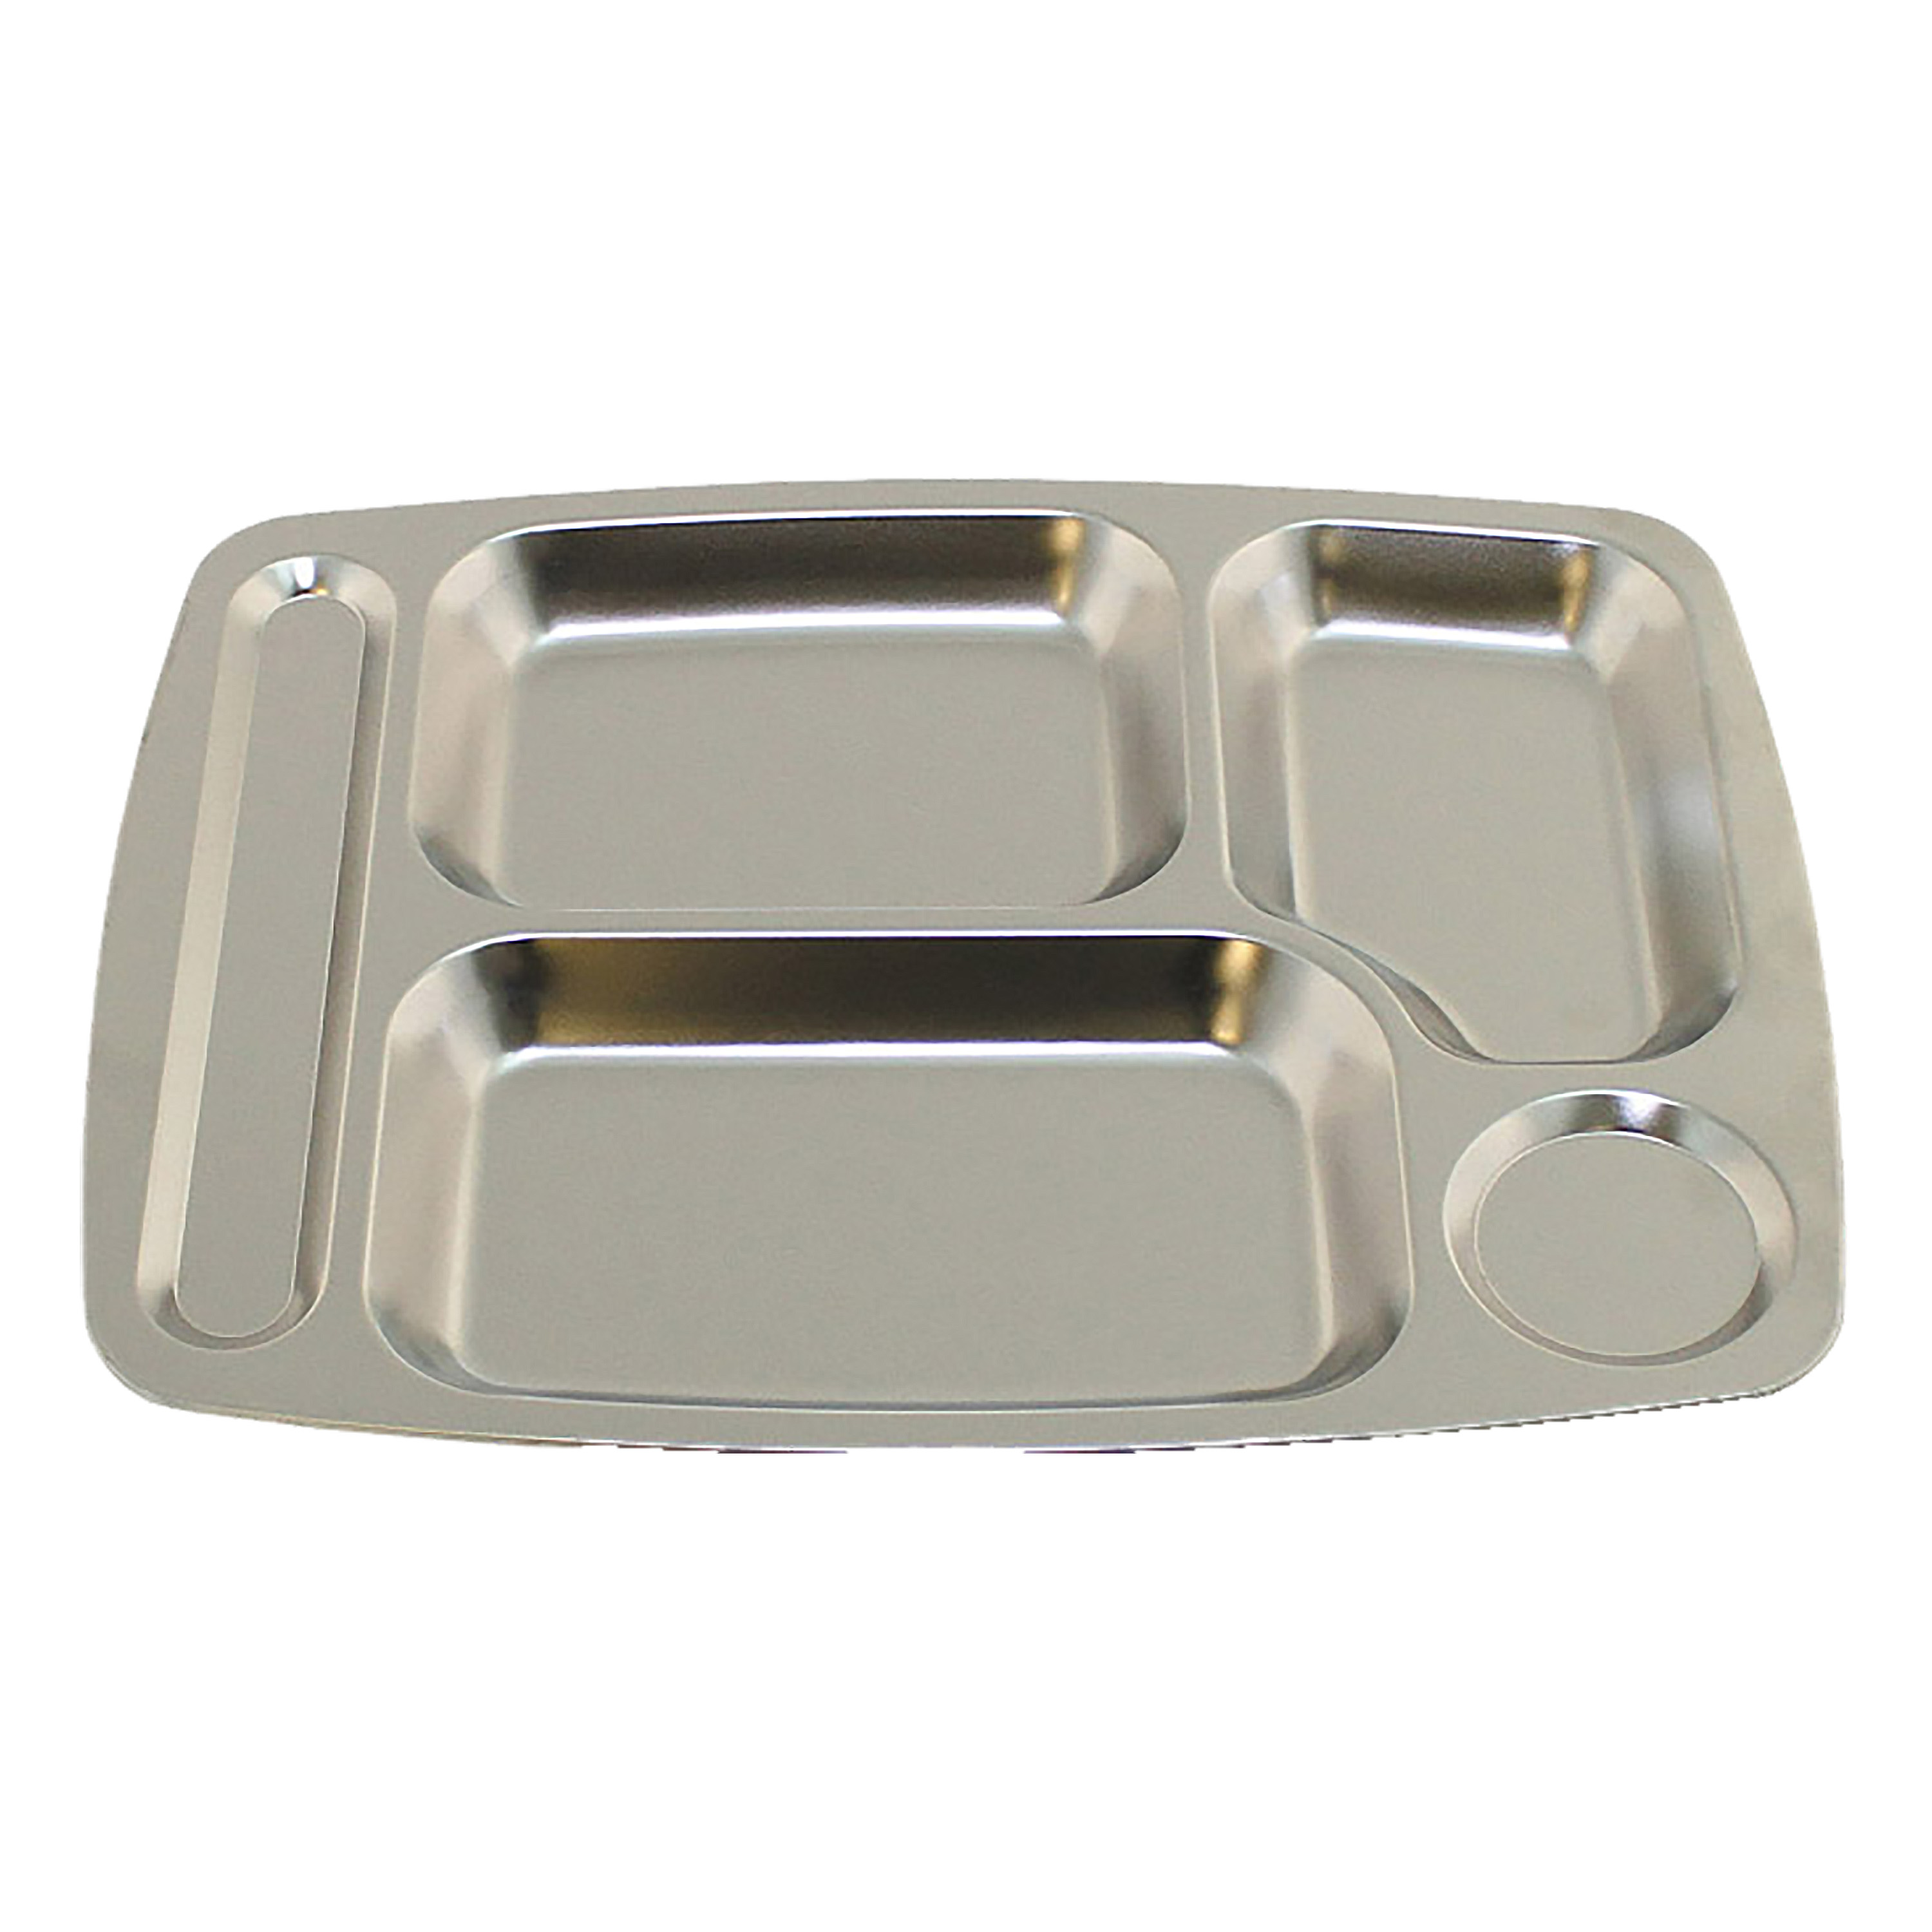 New Divided Plate 4//5 Compartments Food Tray Stainless Steel Dinner Food Serving